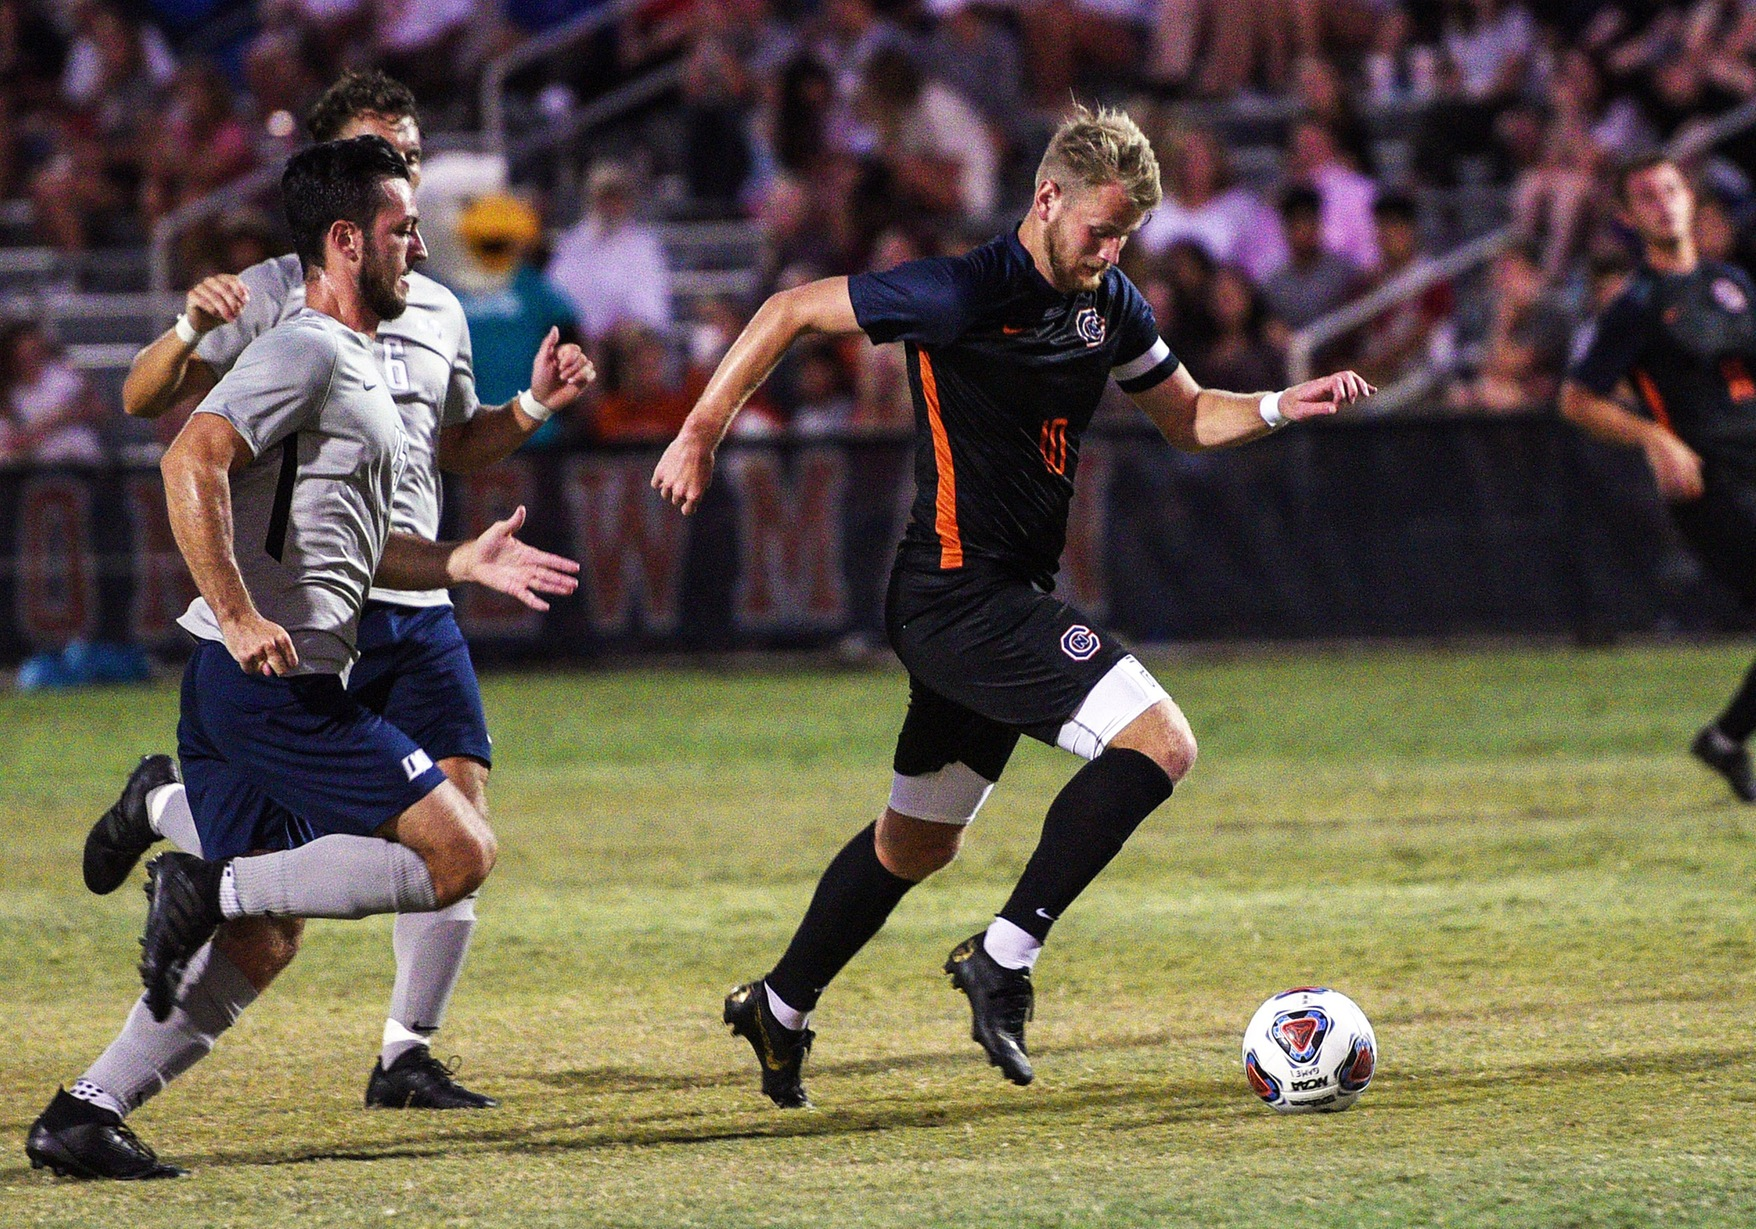 Eagles draw with Trojans despite plethora of shots